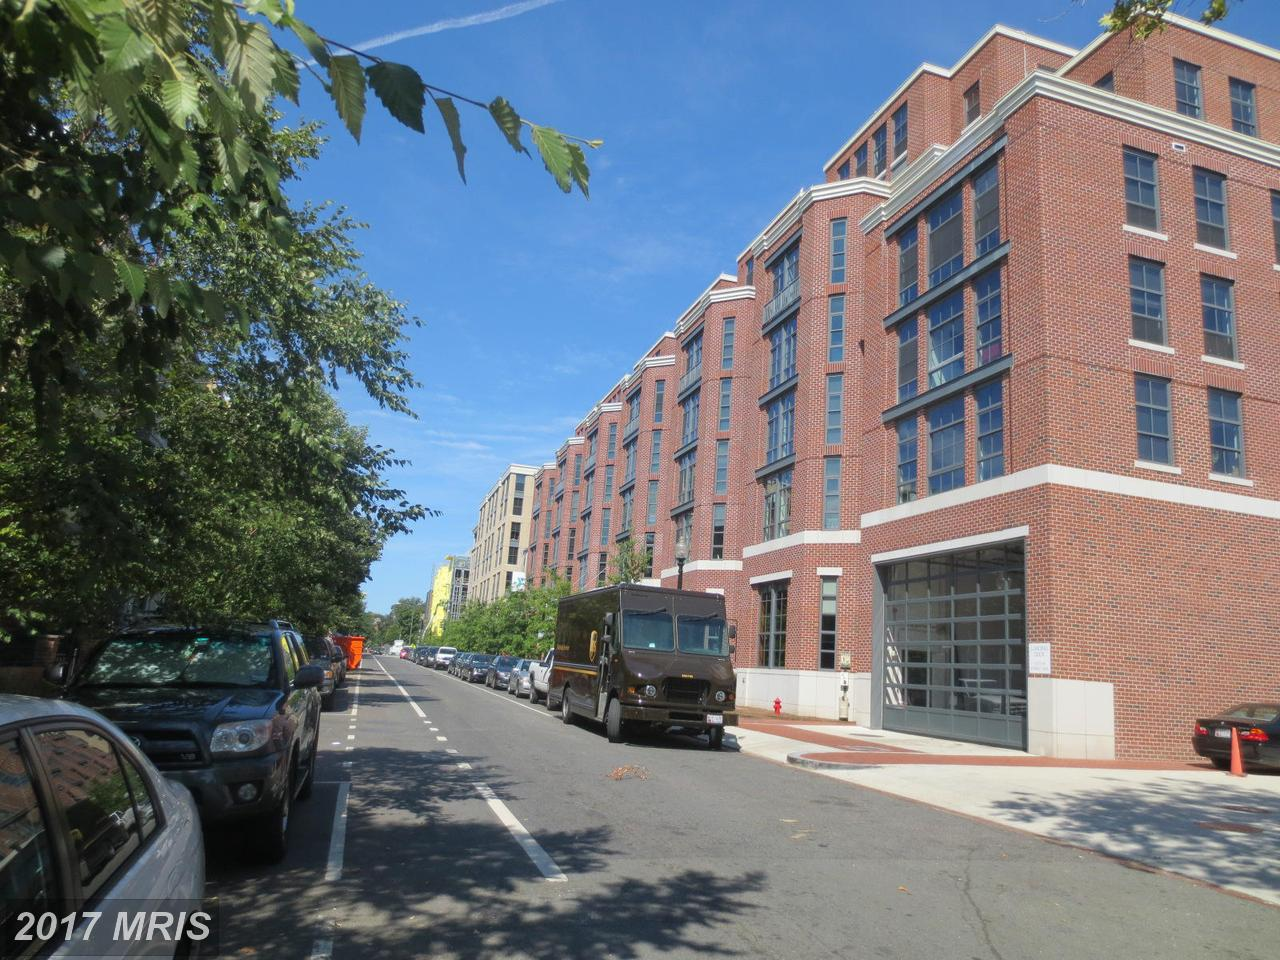 Additional photo for property listing at Lot-Land - WASHINGTON, DC 1300 W ST NW Washington, Округ Колумбия,20009 Соединенные Штаты